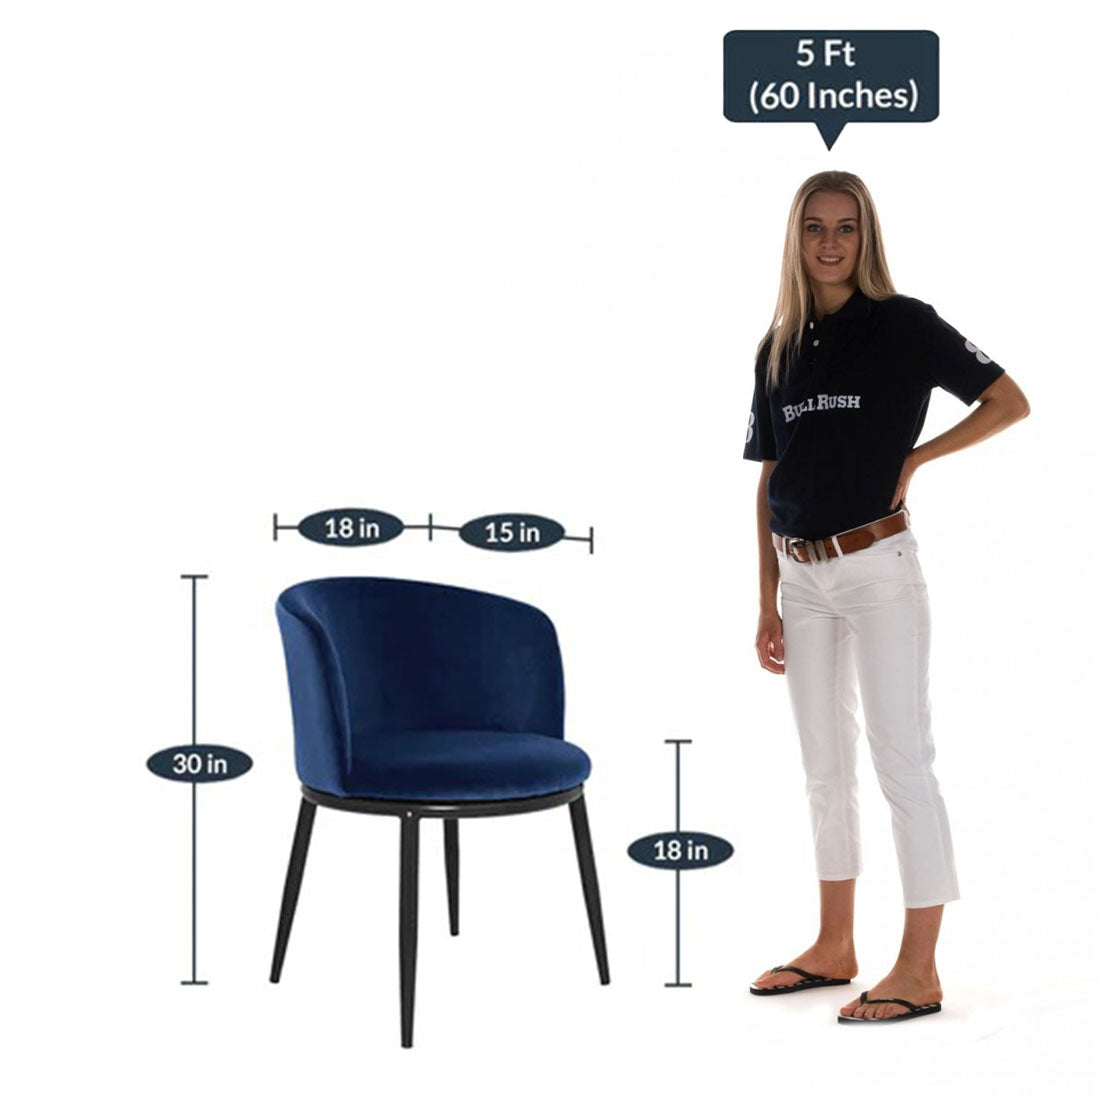 Detec™ Guest Chair in Dark Blue Colour